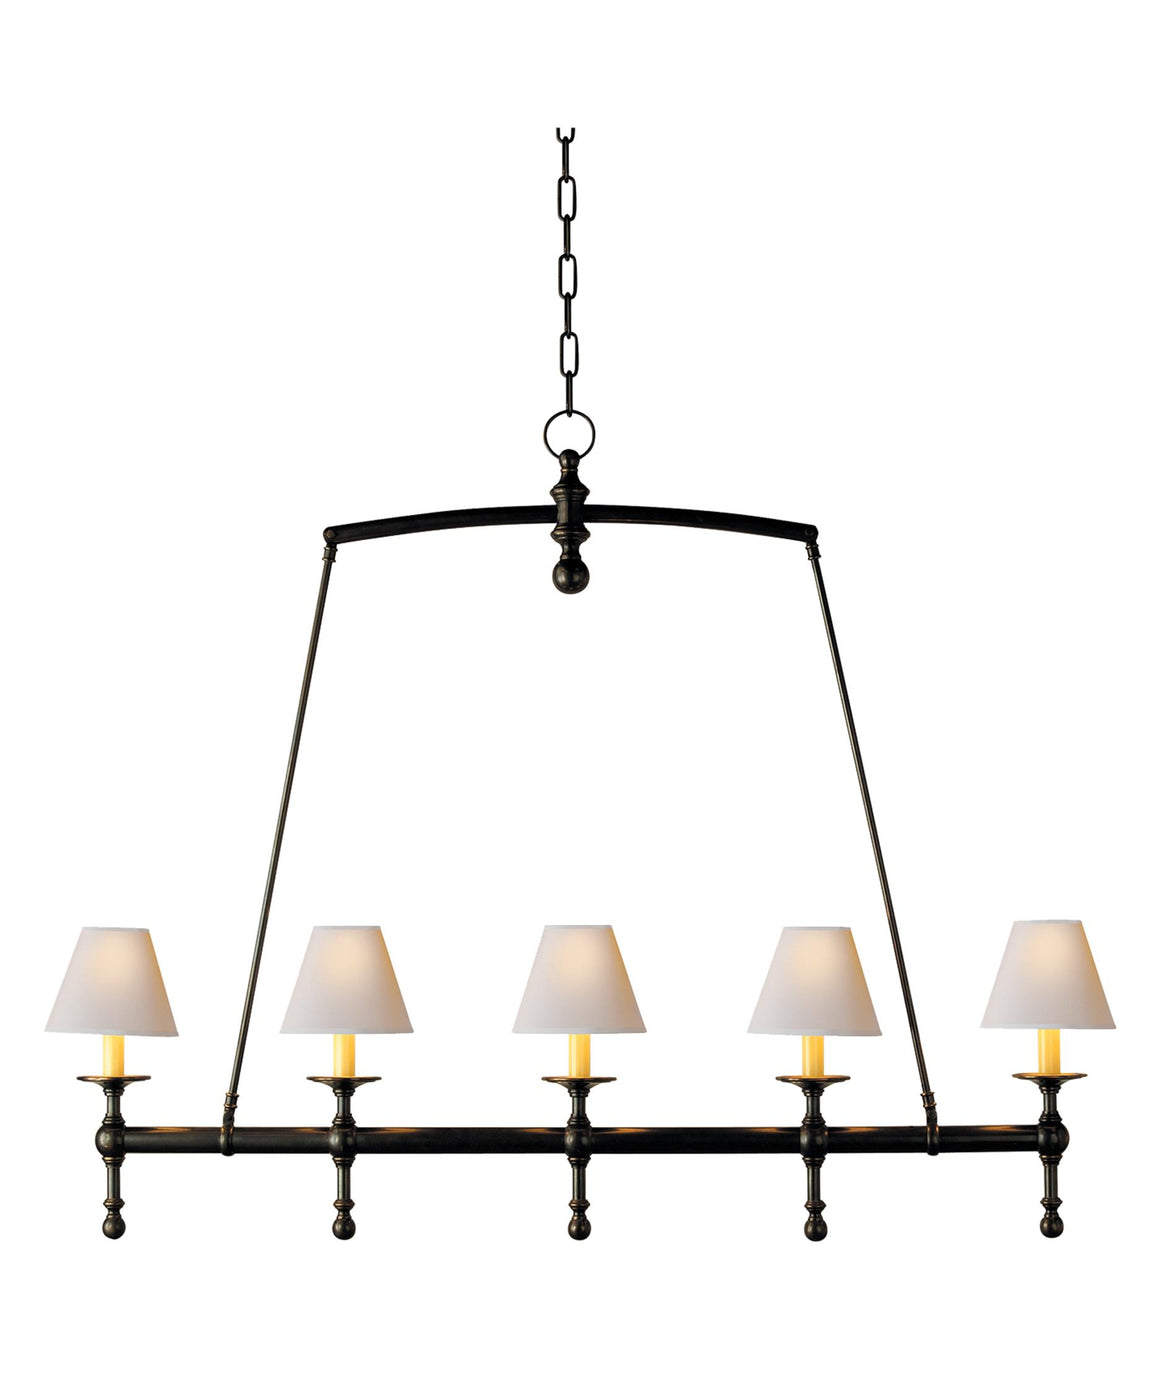 22g-SL5811 BZ-NPChandelier - Graham's Lighting Memphis, TN